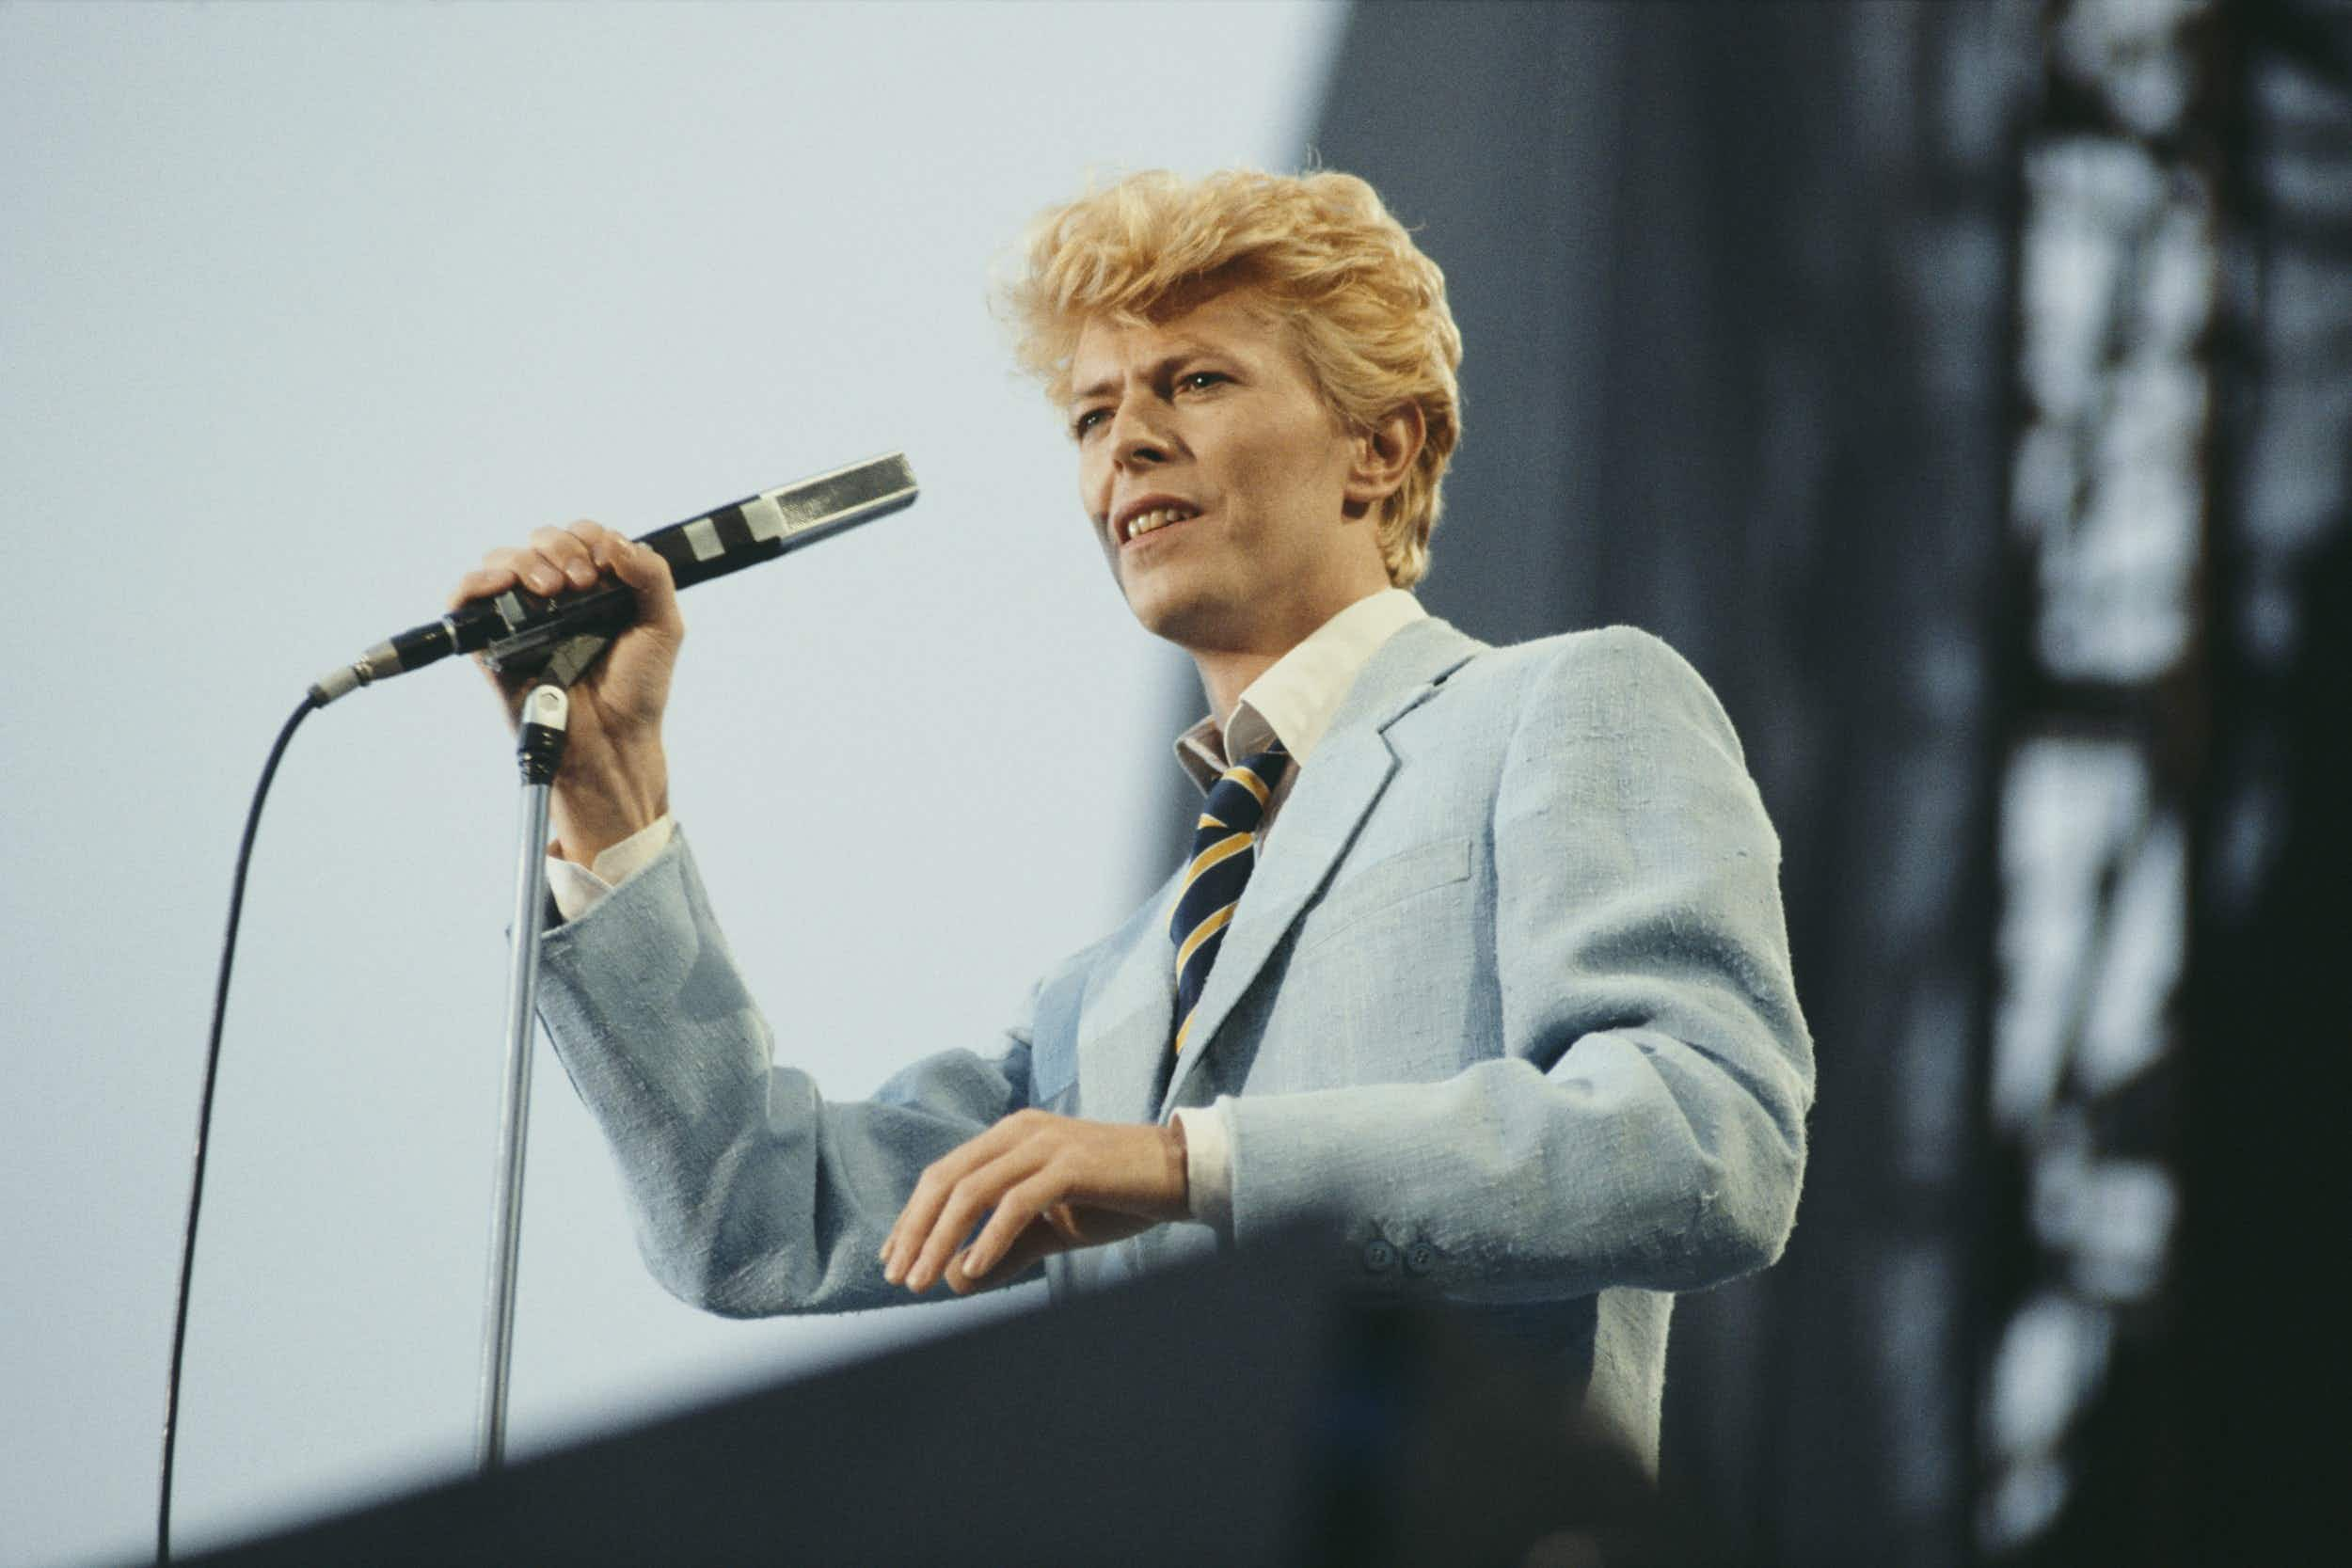 David Bowie performing during his Serious Moonlight World Tour at Vorst Forest Nationaal in Brussels in 1983 © Michael Putland/Getty Images